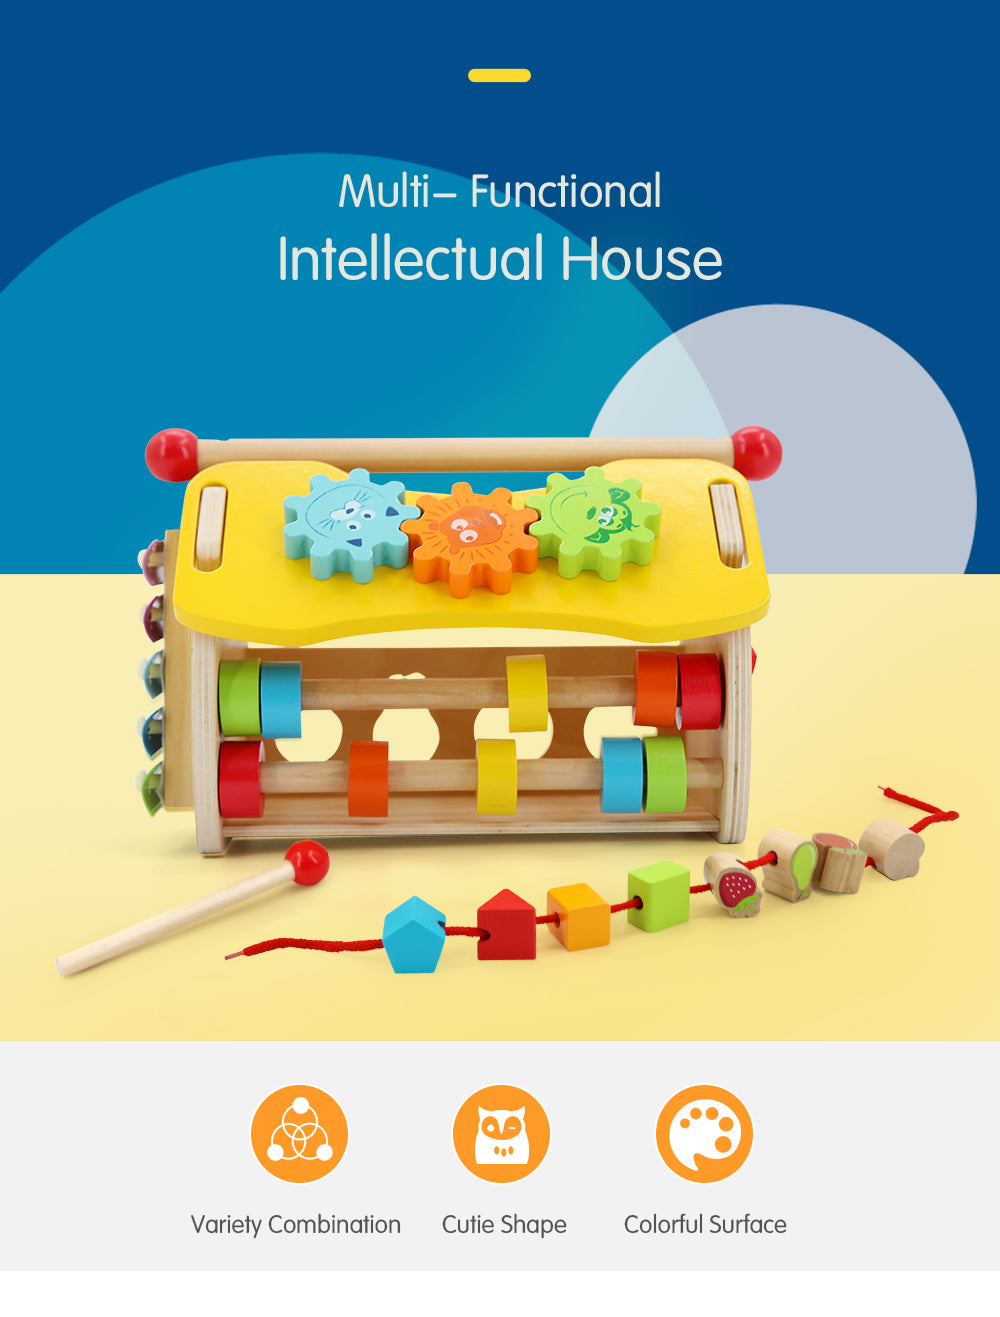 Multi-Functional Intellectual House